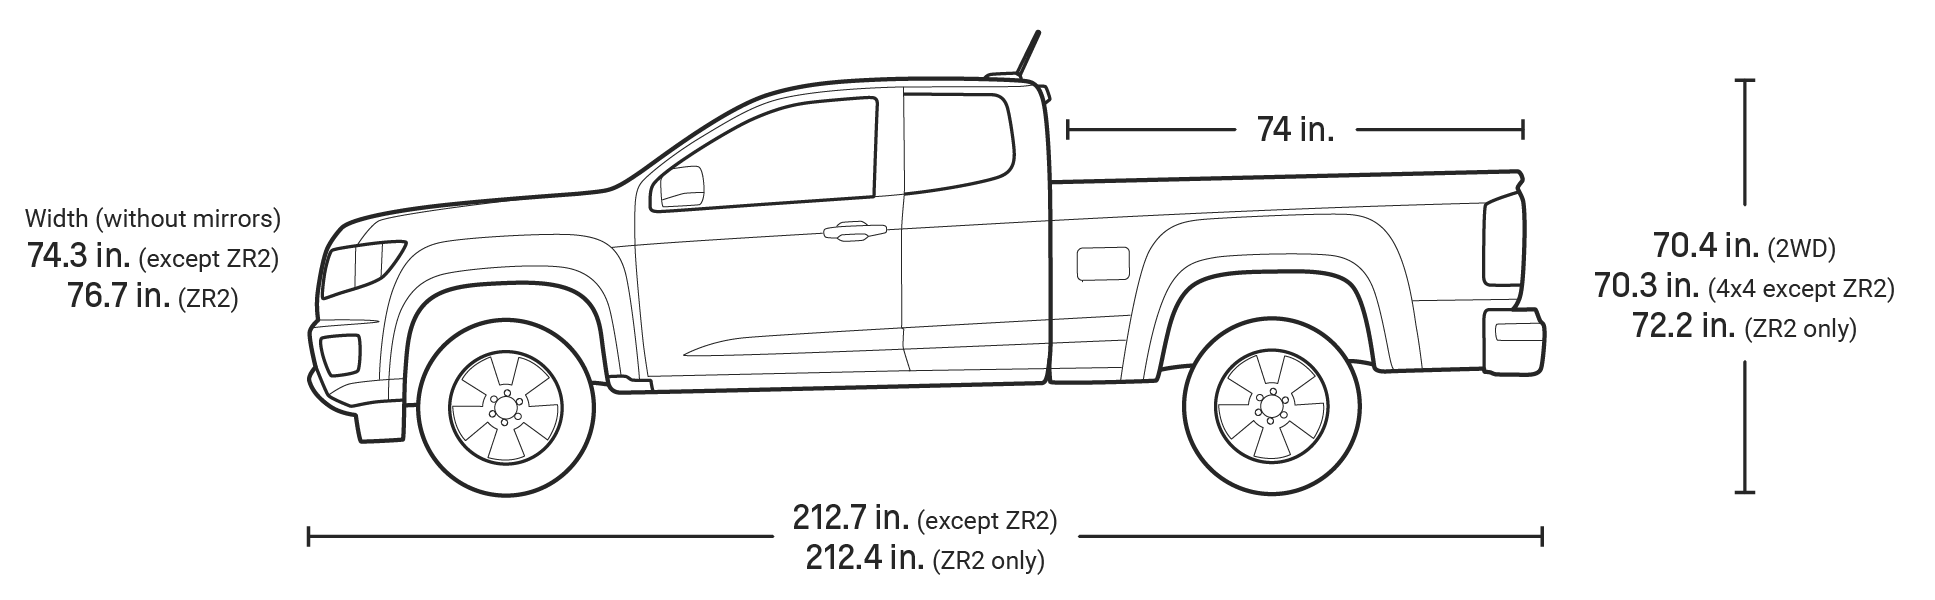 2020 Colorado Commercial Work Truck Specs Highlights